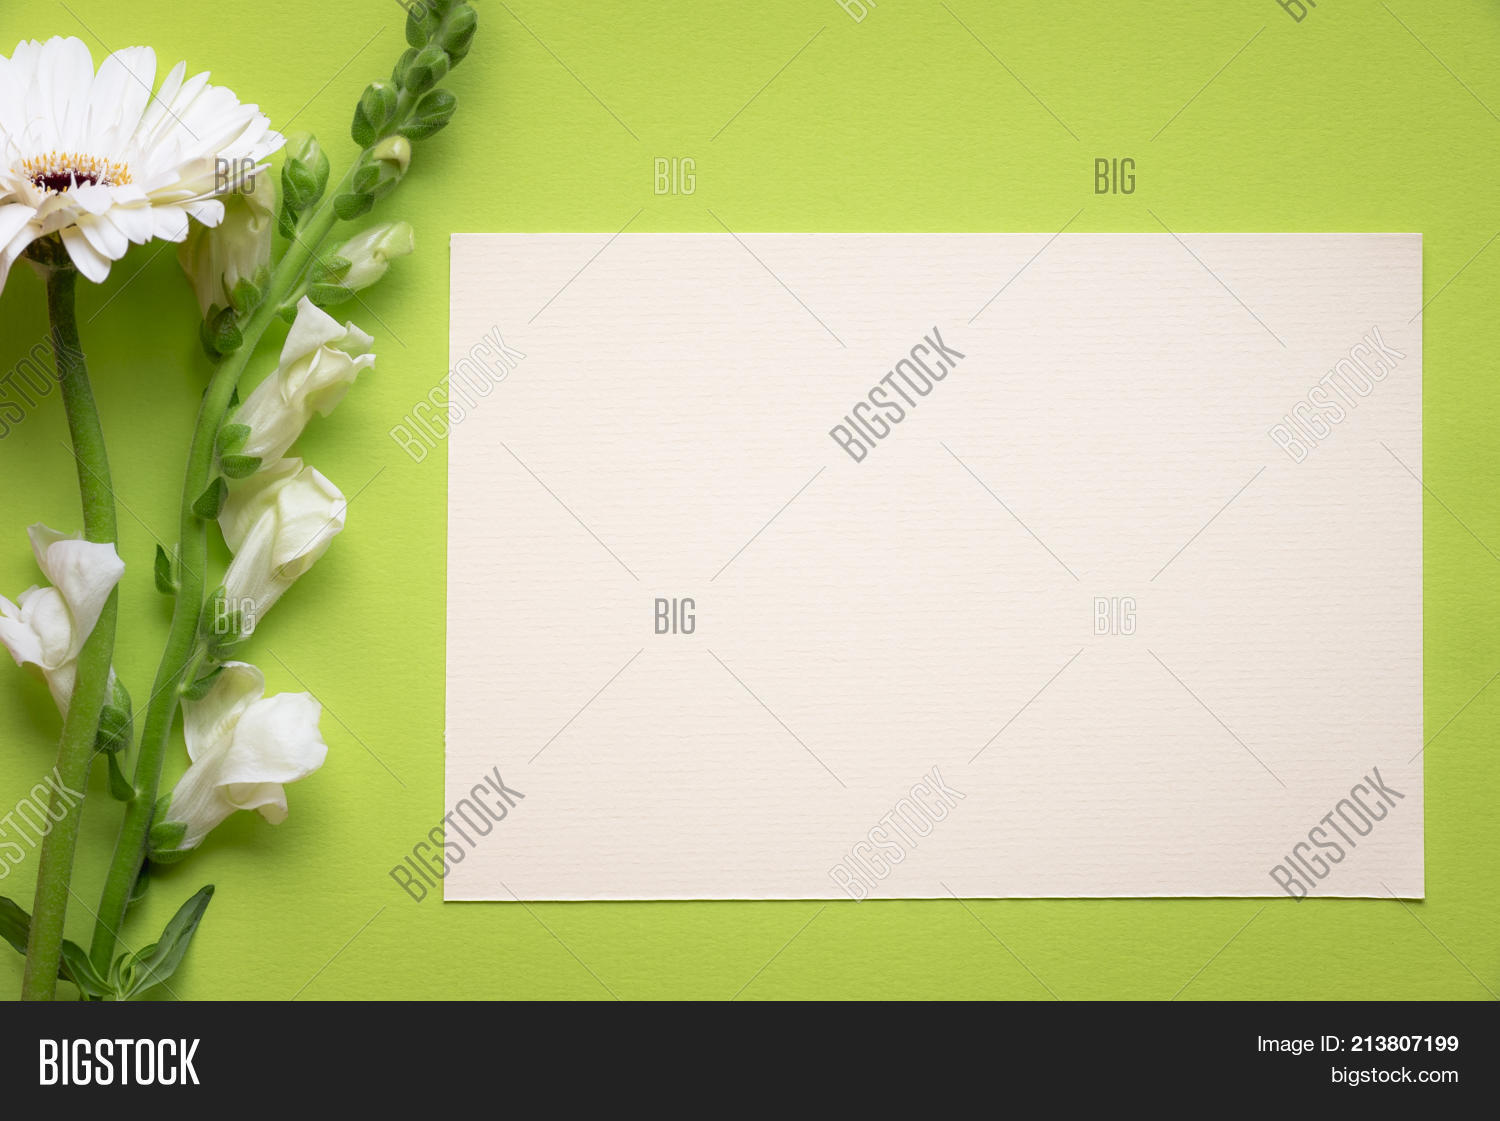 White Flowers Message Card Image Photo Bigstock